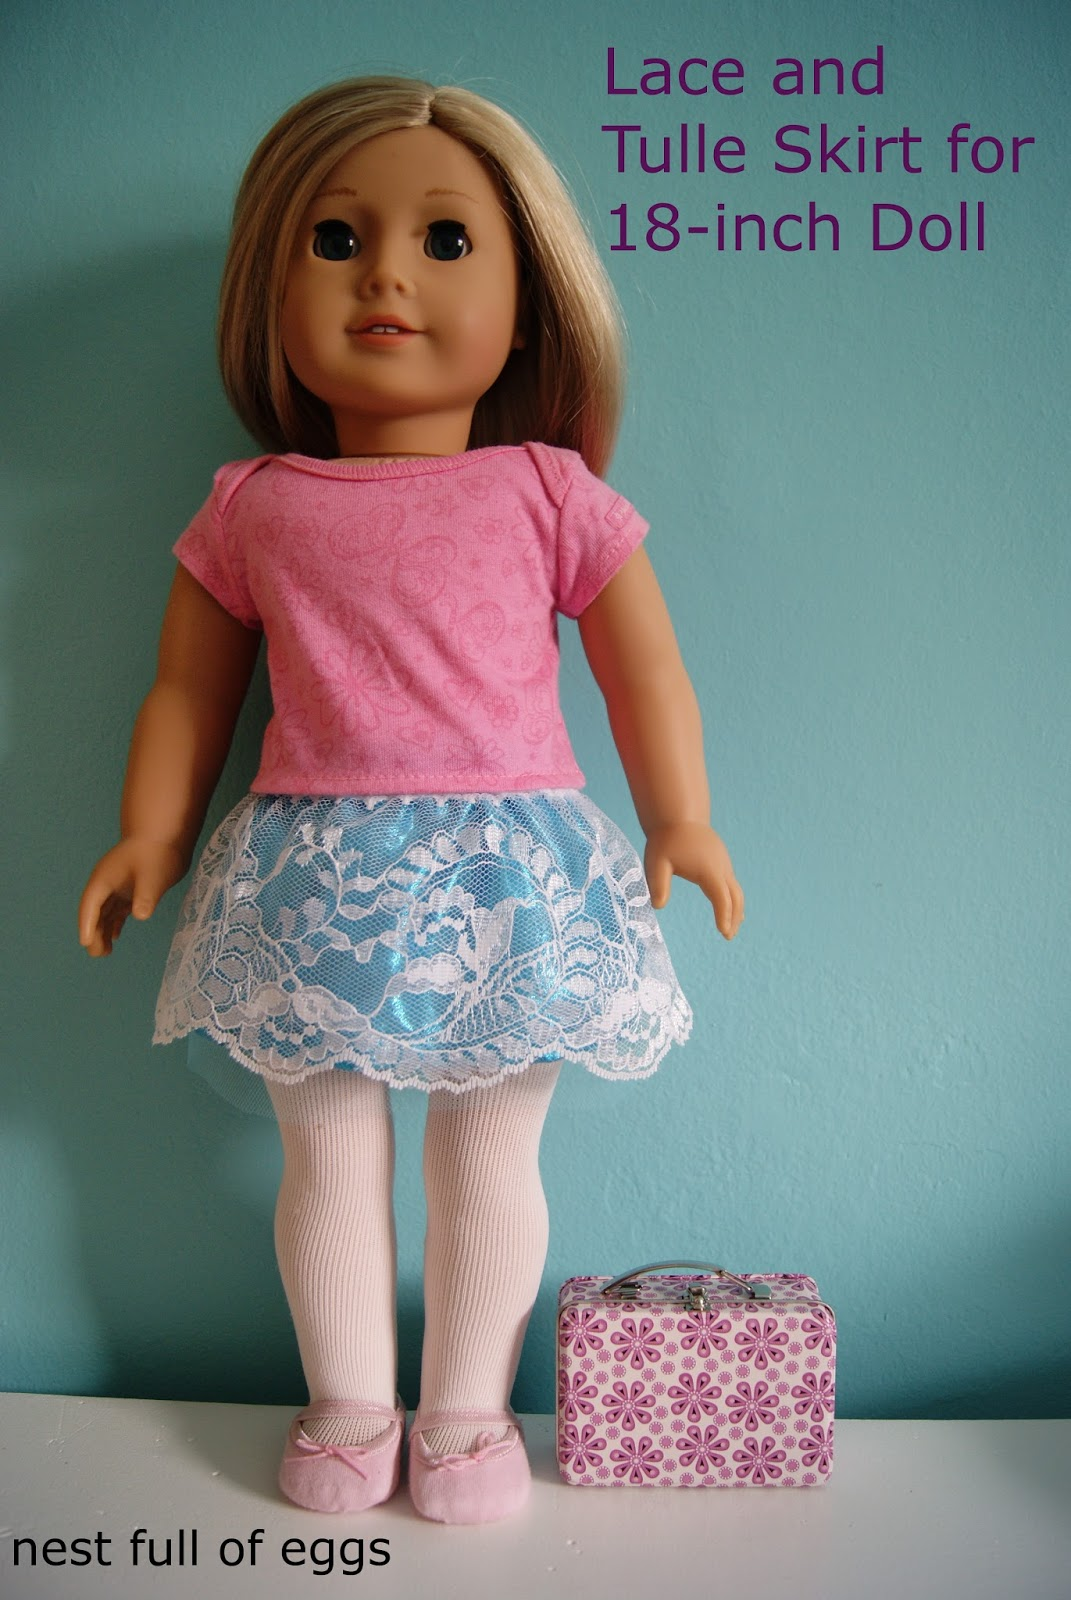 Lace and tulle skirt for 18-inch doll by nest full of eggs